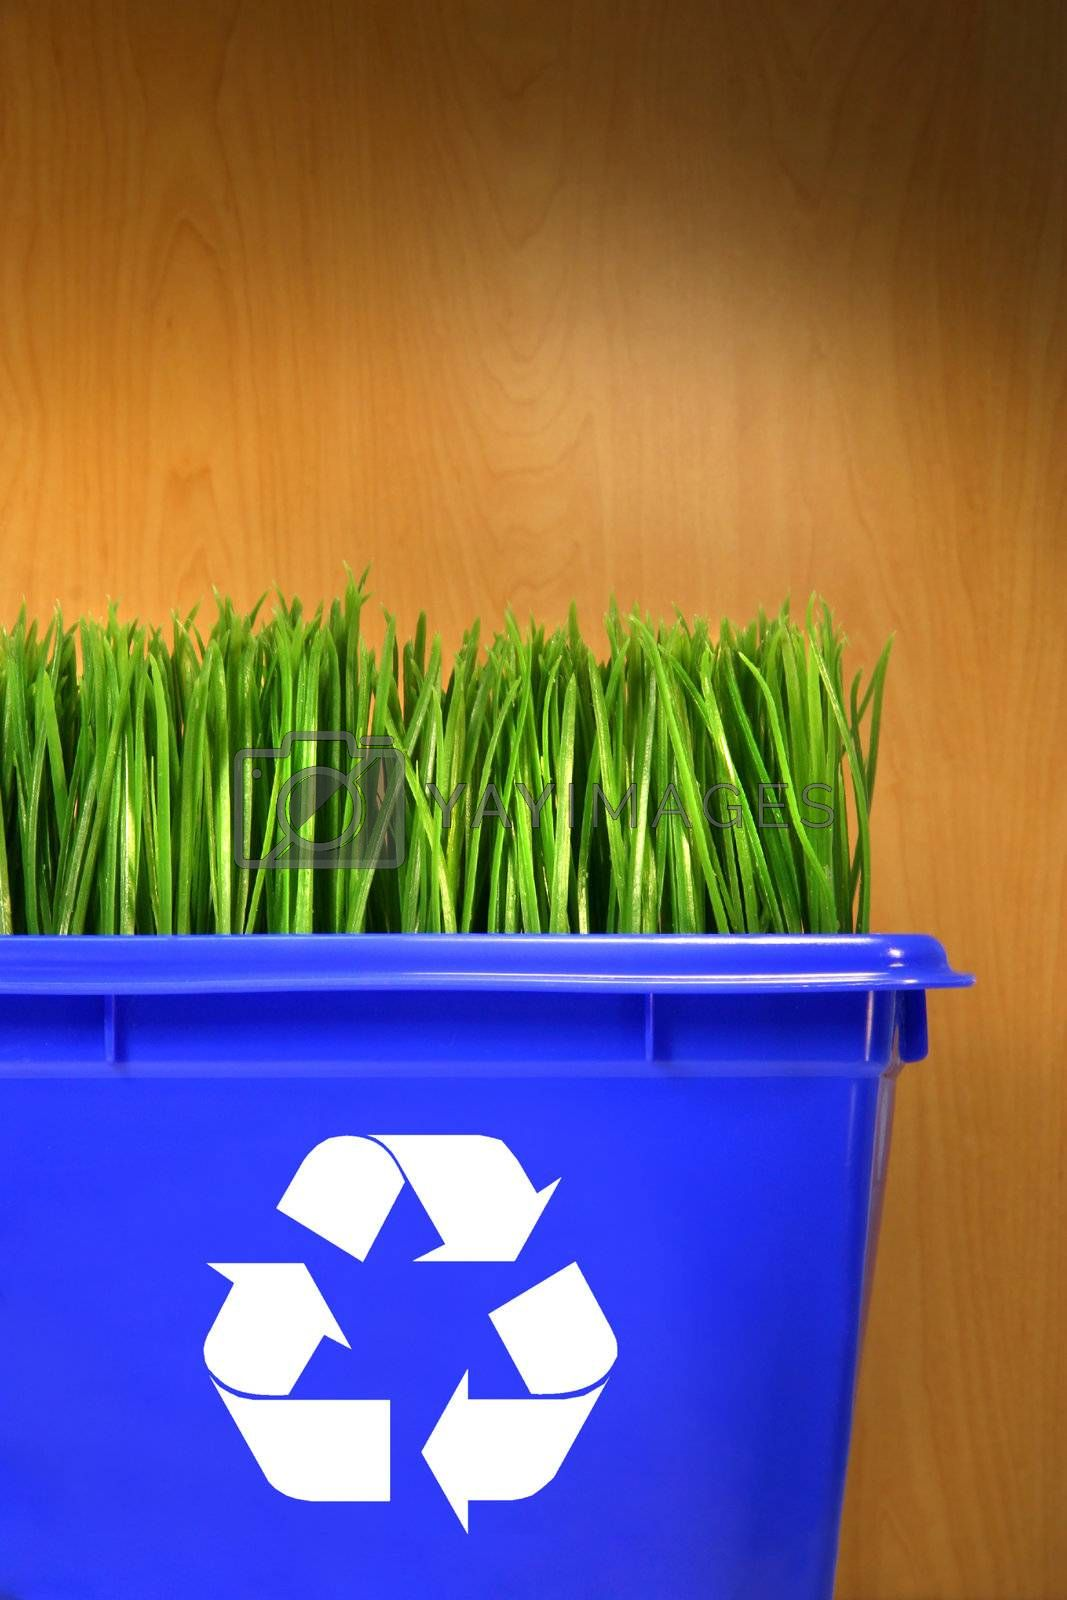 Blue recycle bin with grass inside against wood background